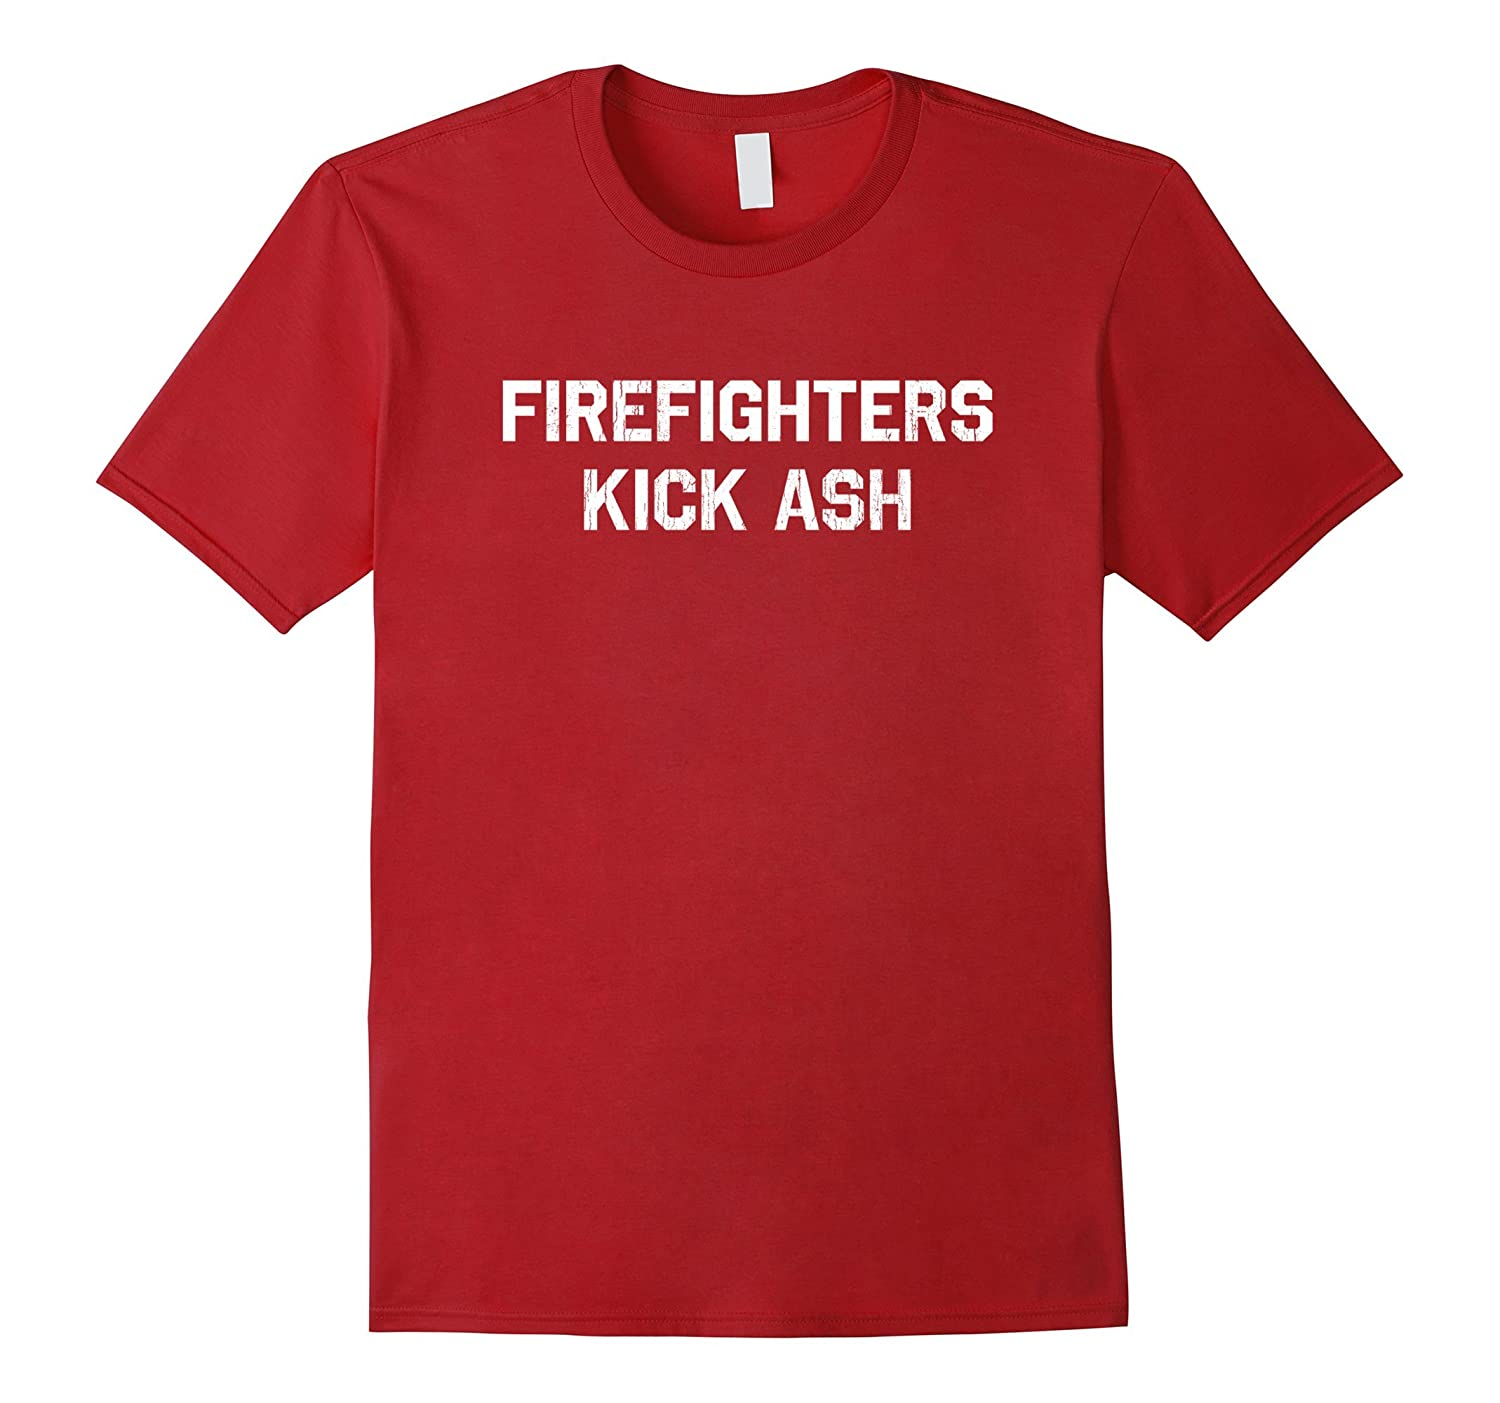 2b00ebe35 Firefighters Kick Ash T-Shirt Funny Firefighter Shirt-BN – Banazatee